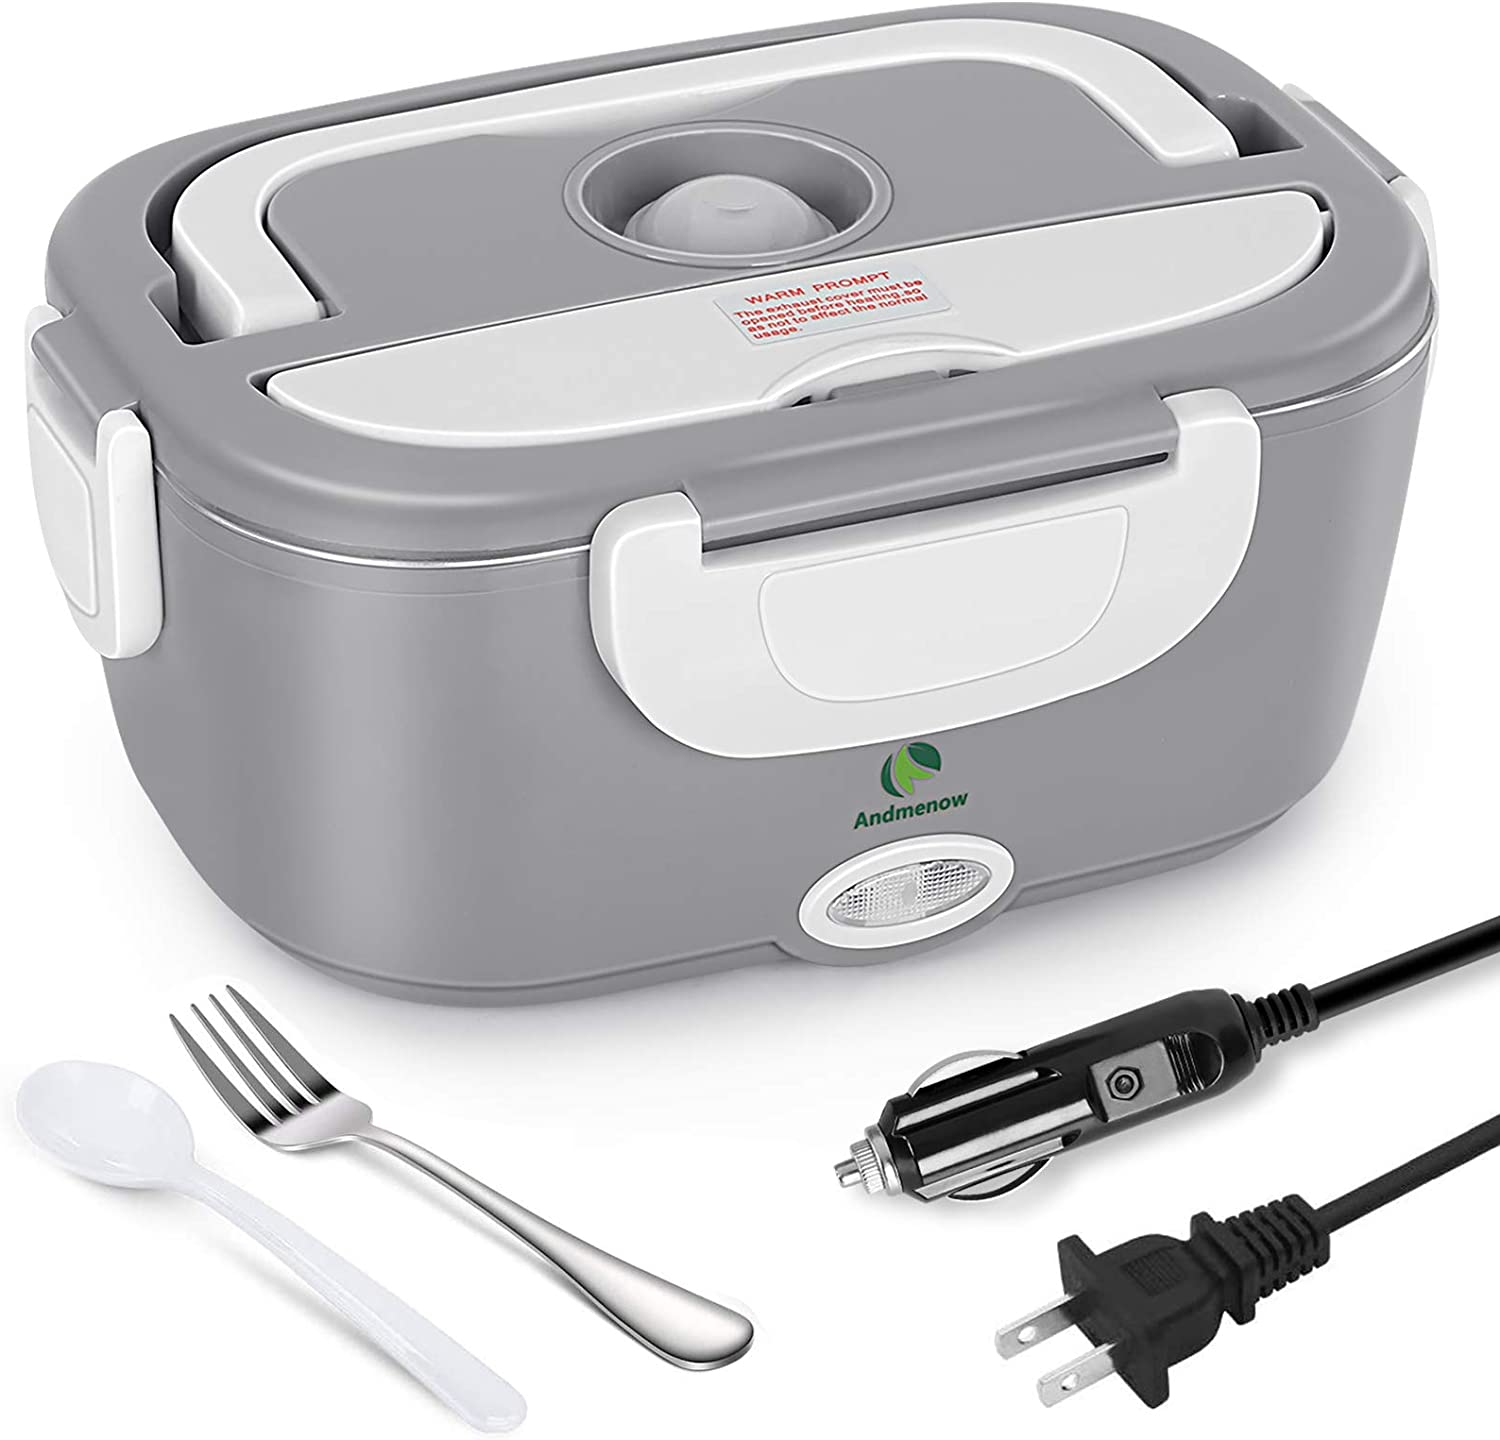 Andmenow Electric Lunch Box 3 in 1 for Car/Truck and Office, Portable Heater 110V & 12V 24V 40W Stainless Steel Food Heater 1.5L, Spoon and 2 Compartments Included (Gray)